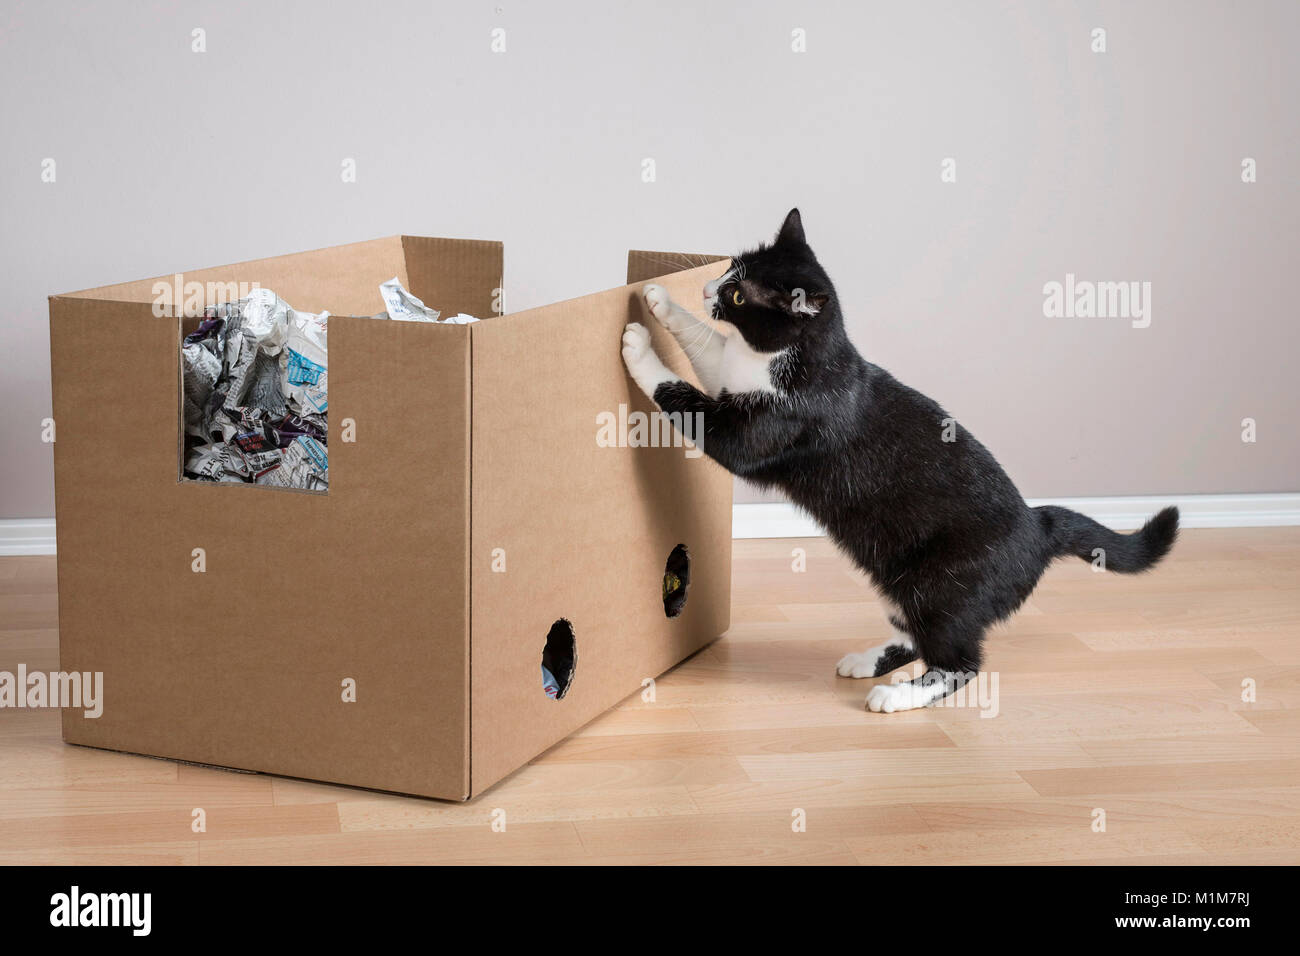 Domestic Cat. Tuxedo cat investigating a box filled with paper. Germany - Stock Image